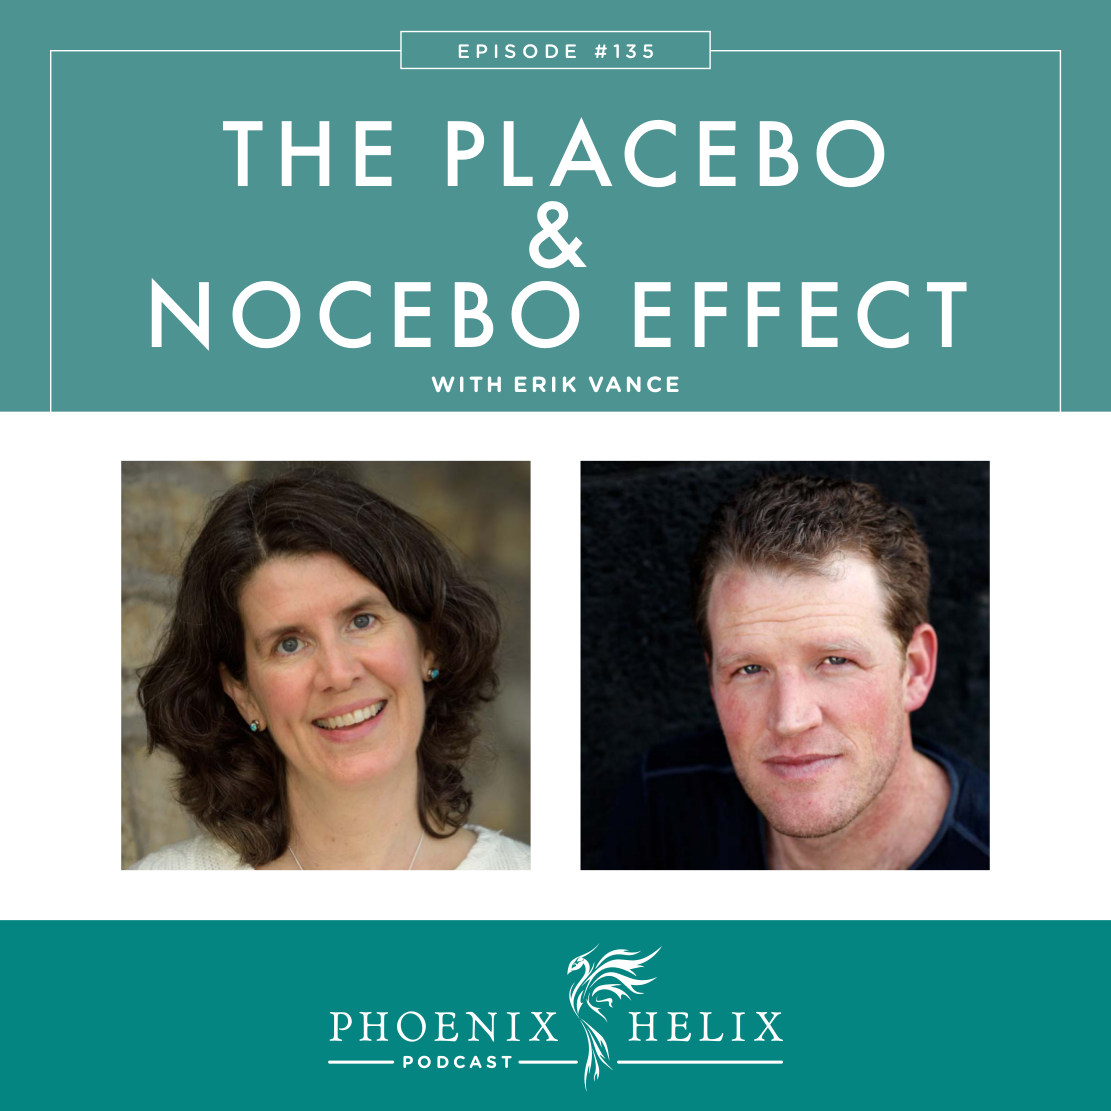 The Placebo and Nocebo Effect with Erik Vance | Phoenix Helix Podcast